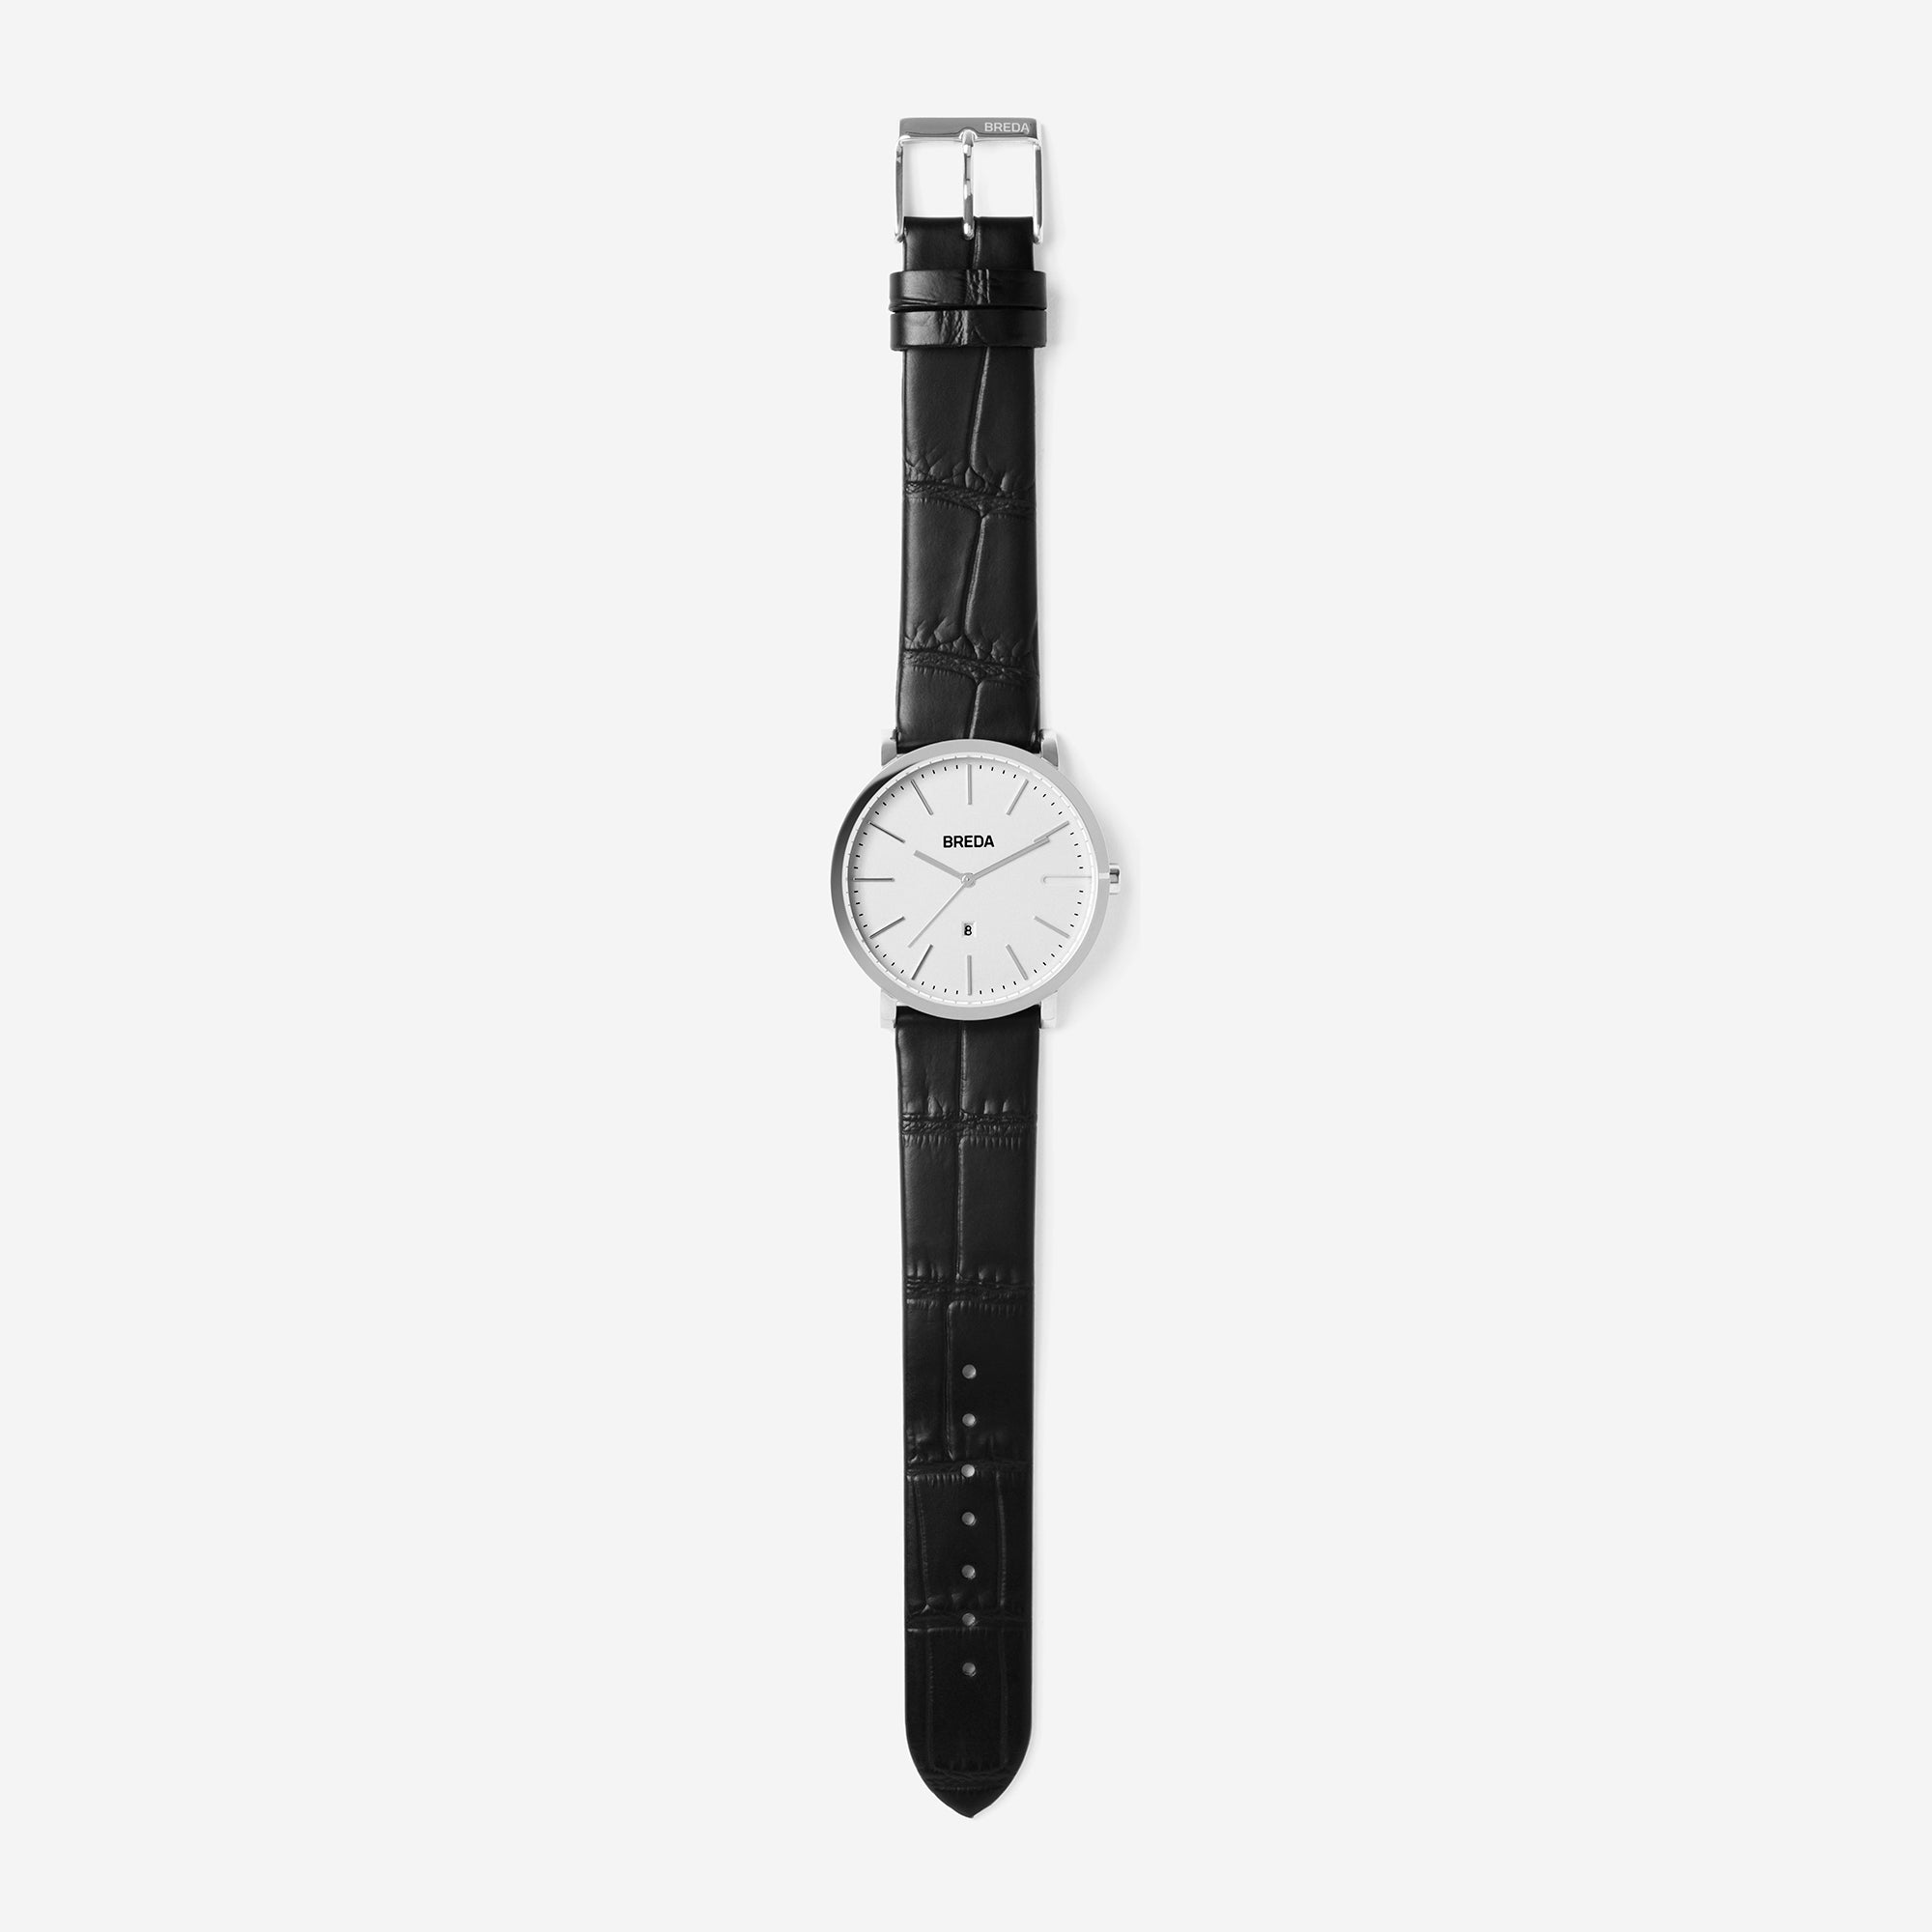 //cdn.shopify.com/s/files/1/0879/6650/products/breda-breuer-1732c-silver-black-leather-watch-long_f718bf4f-4a8e-4f46-a1b8-ac0424821c46_1024x1024.jpg?v=1543245249